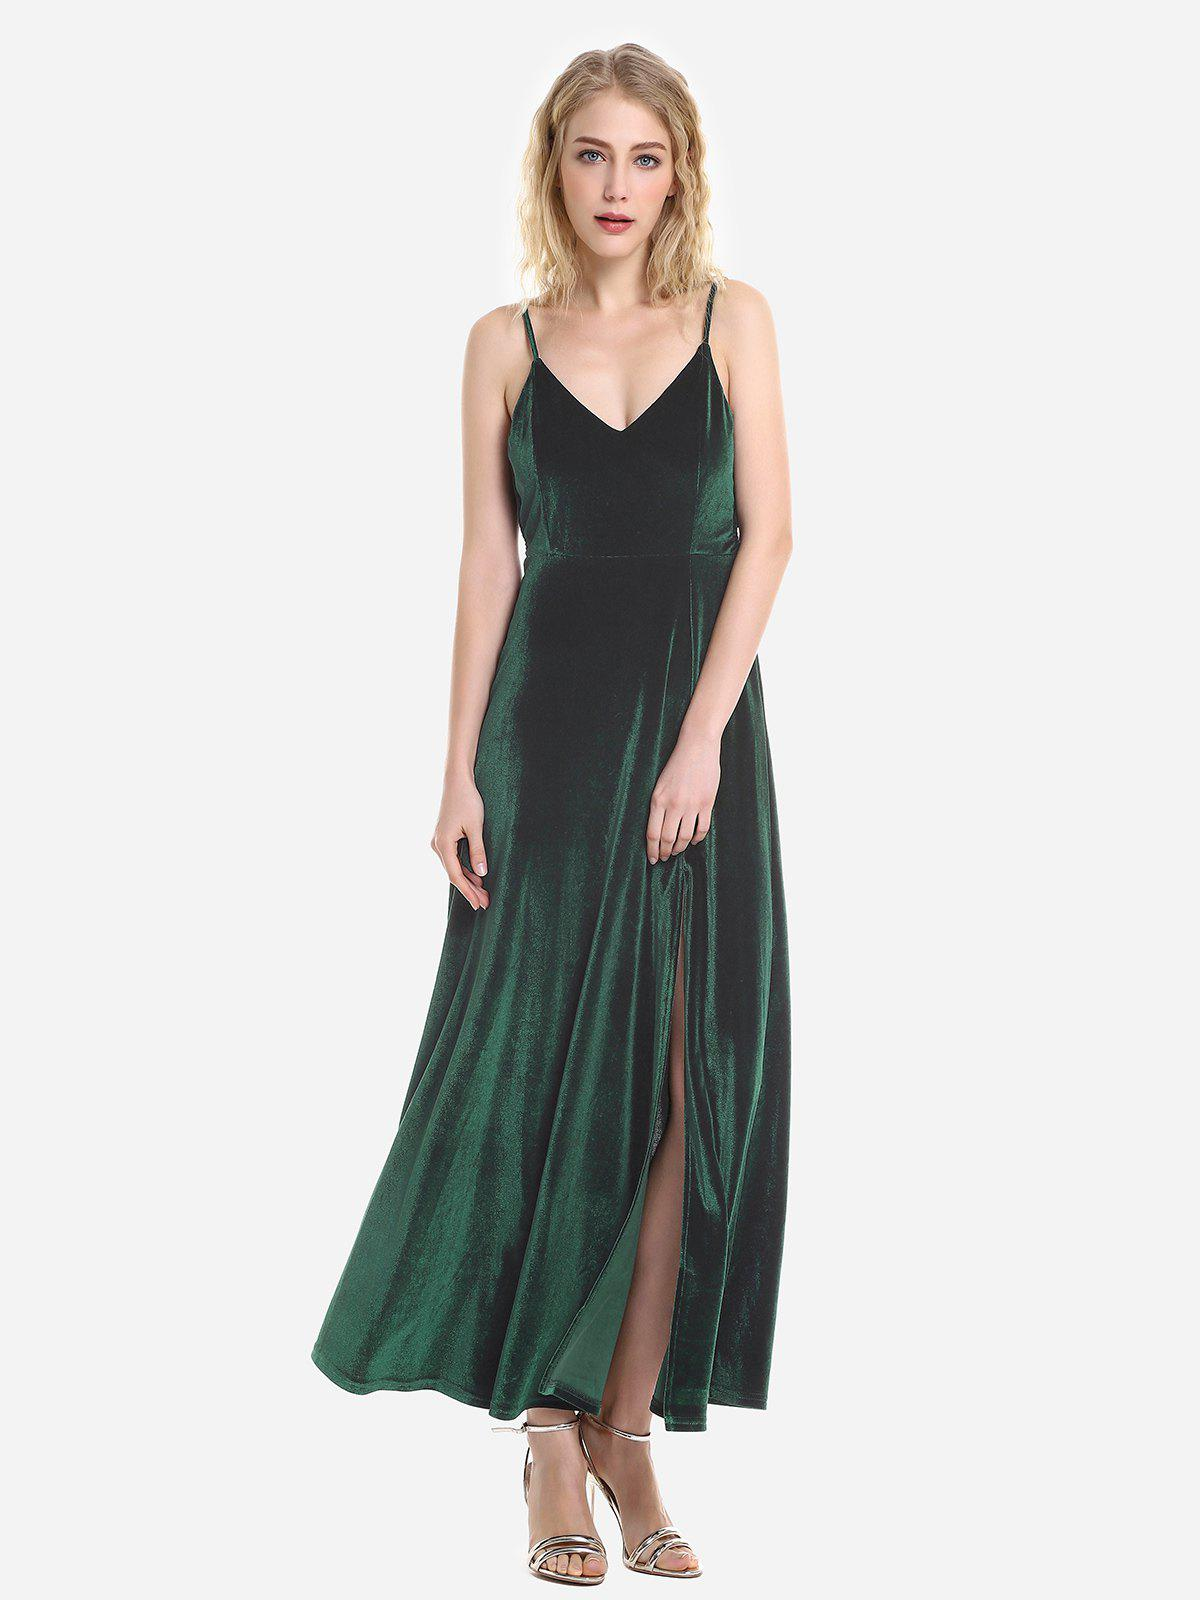 Fancy Velvet Adjustable Strip Slip Dress